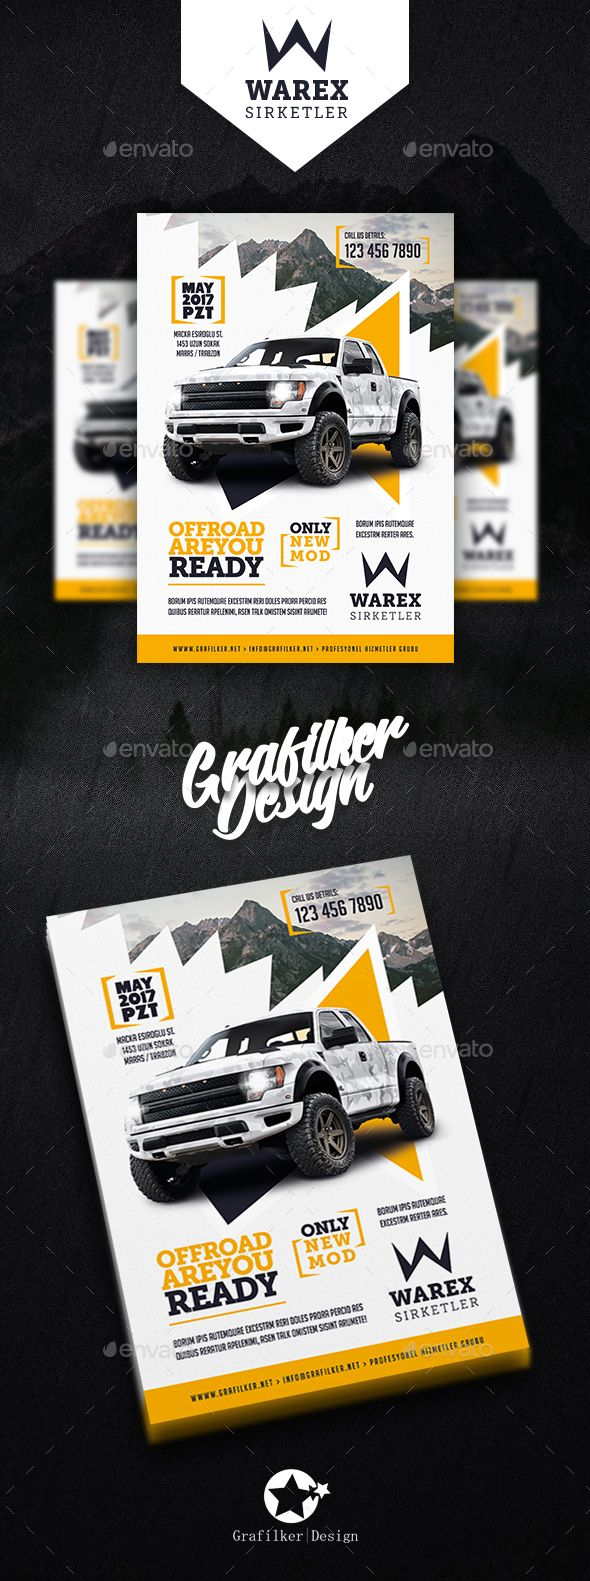 Car Sales Flyer Templates | Pinterest | Flyer template, Template and ...